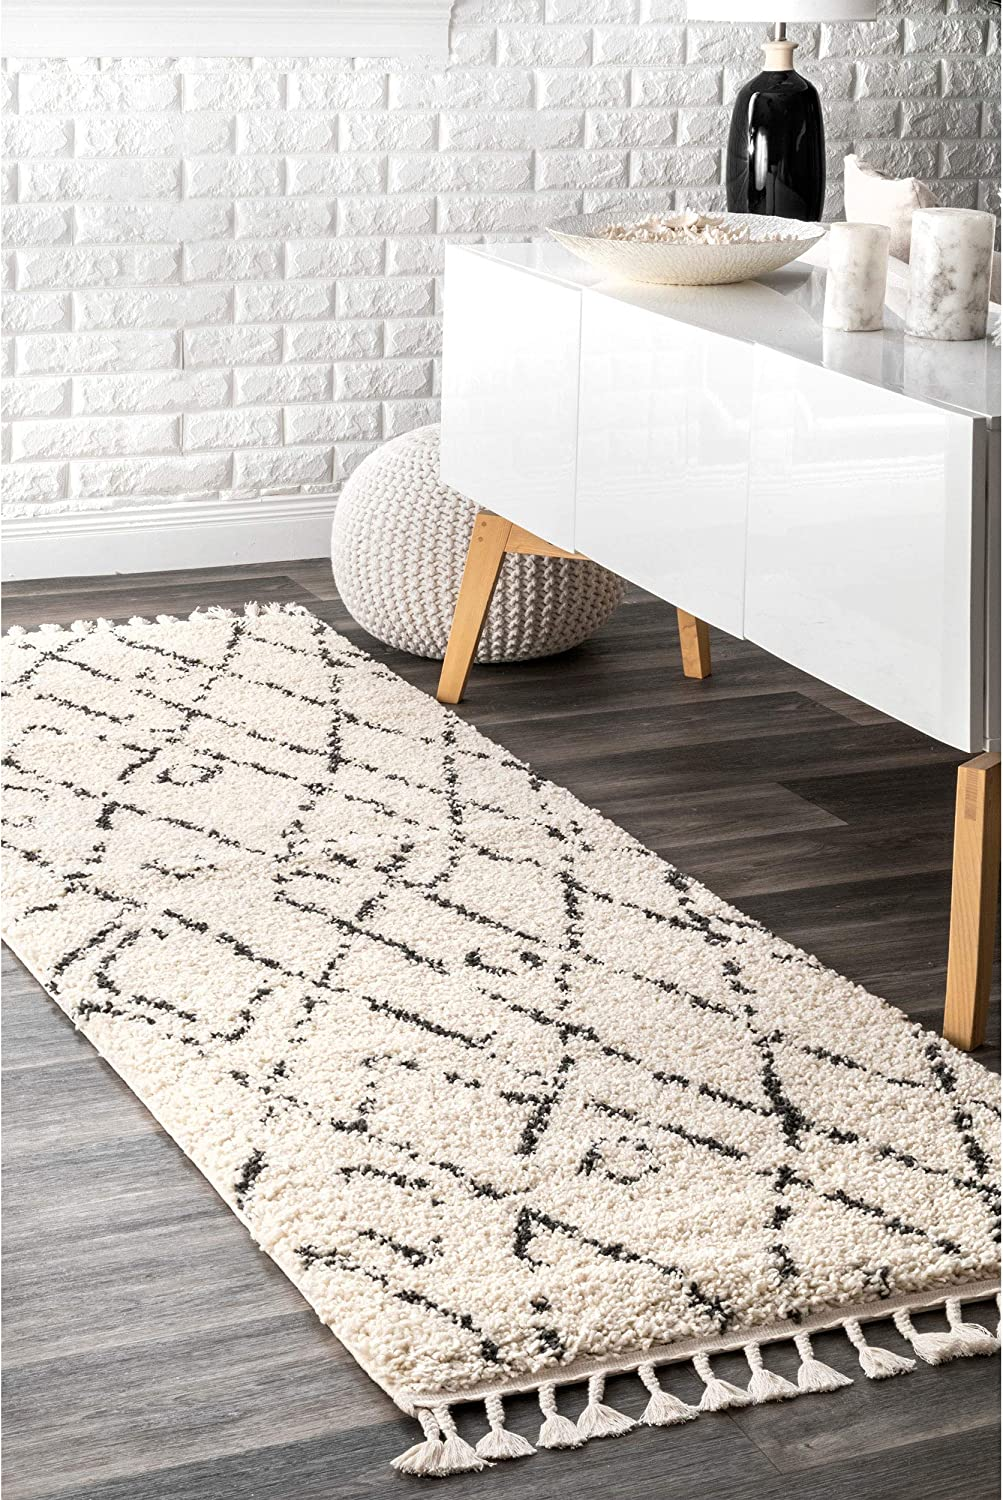 NuLOOM GCDI01A Nieves Mgoldccan Diamond Shag Runner Rug, 2' 8  x 8', Off White